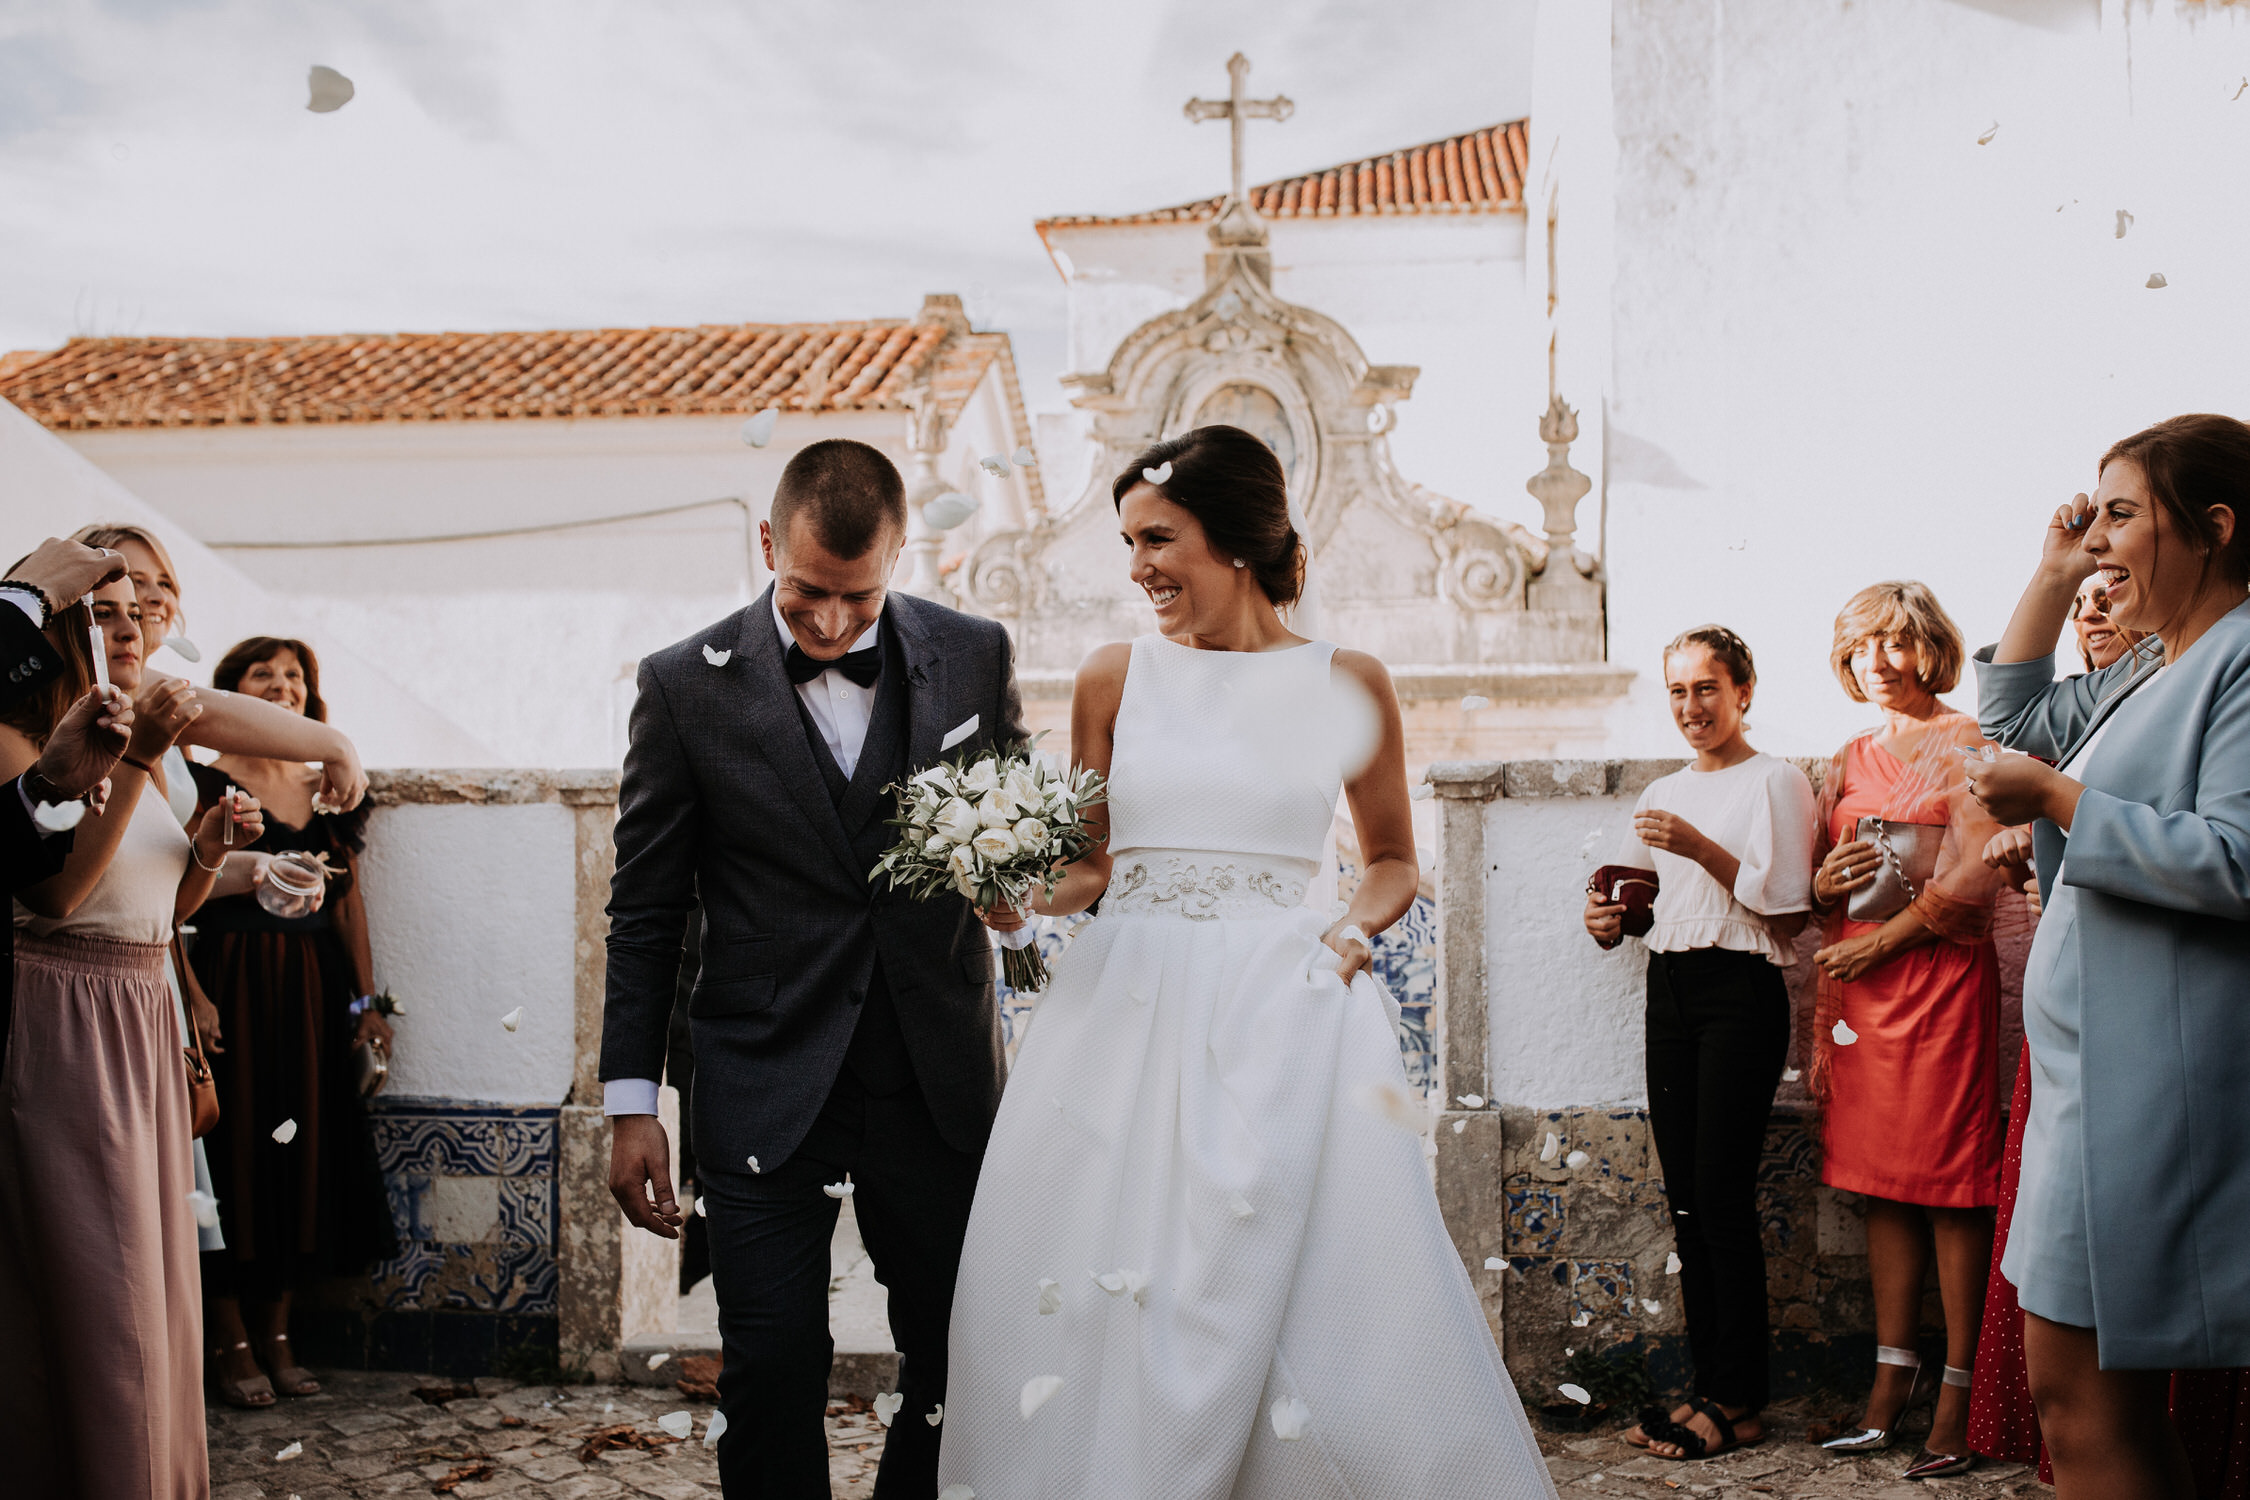 065 Filipe Santiago Fotografia Casamento wedding photographer near venue Lisbon Malveira Ericeira best Sintra Portugal destination